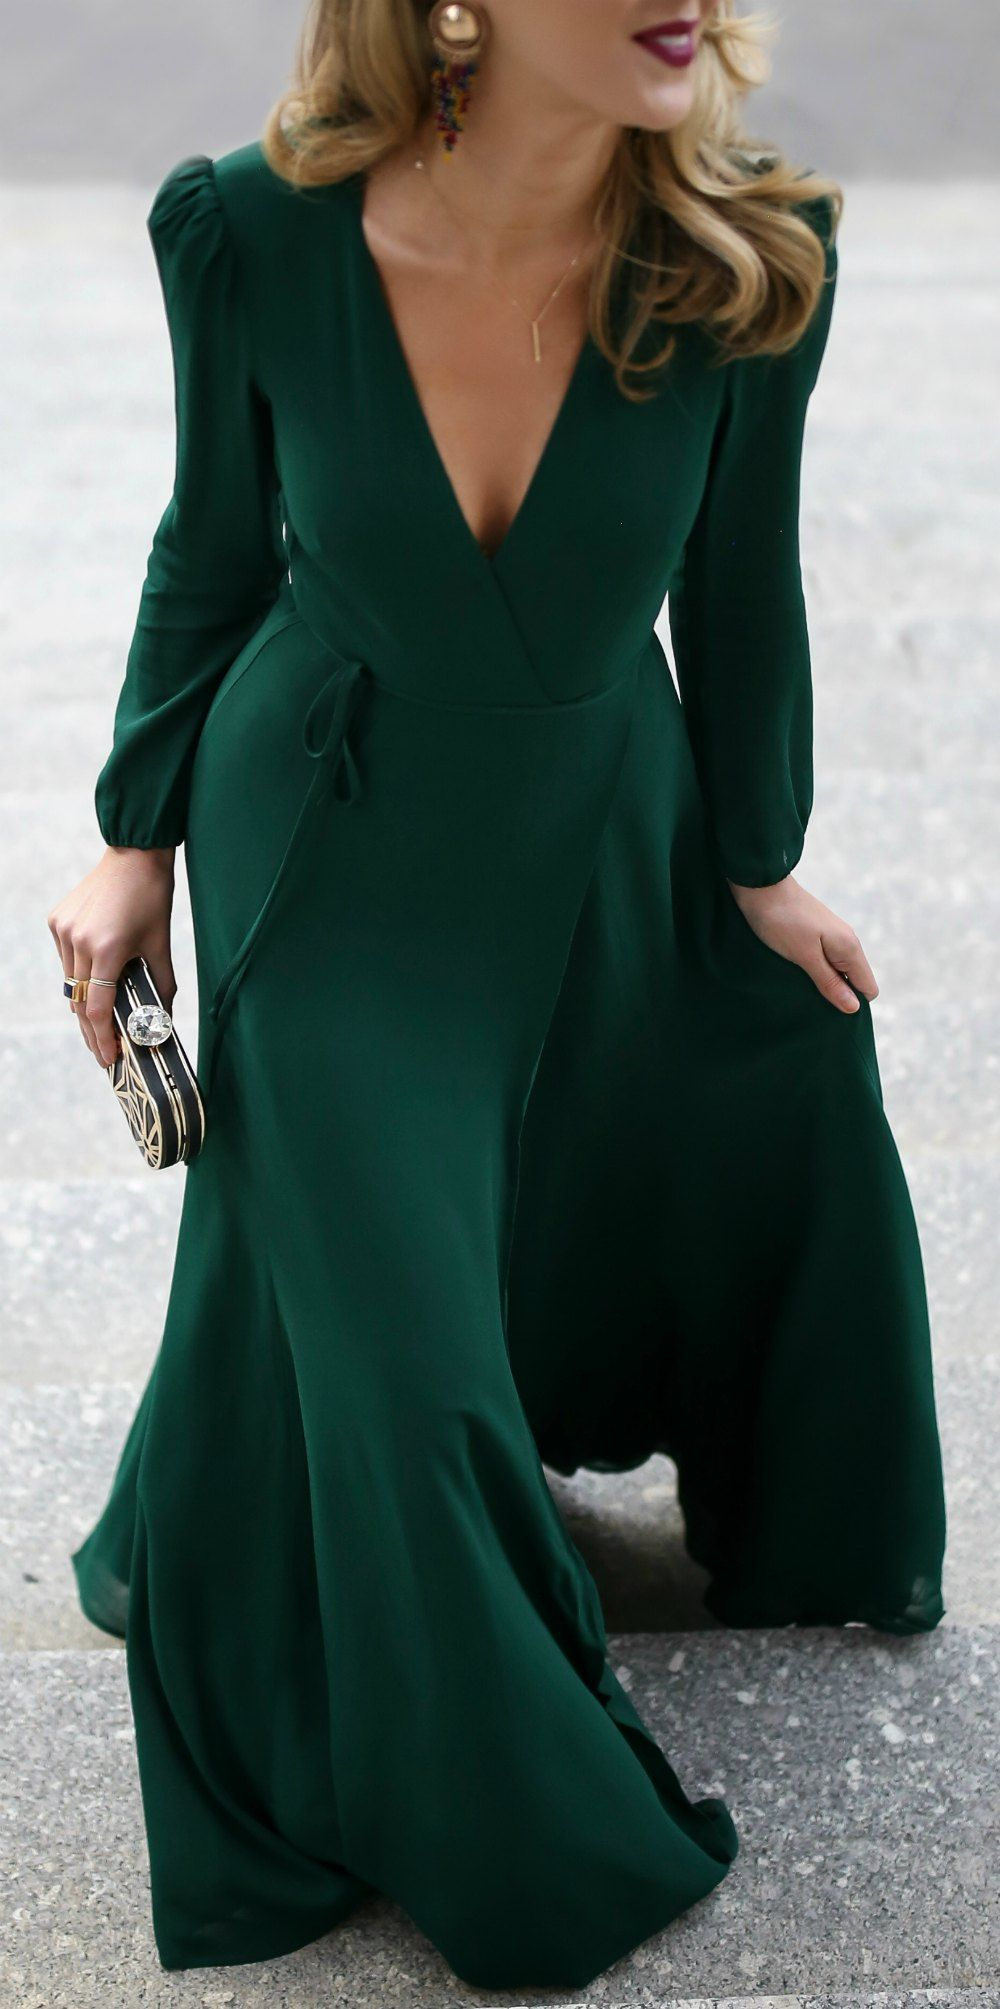 Emerald Green Long Sleeved Floor Length Wrap Dress Black And Gold Geometric Pattern Evening Clutch Multicolor Bead Fashion Formal Wedding Guests Guest Outfit [ 2009 x 1000 Pixel ]